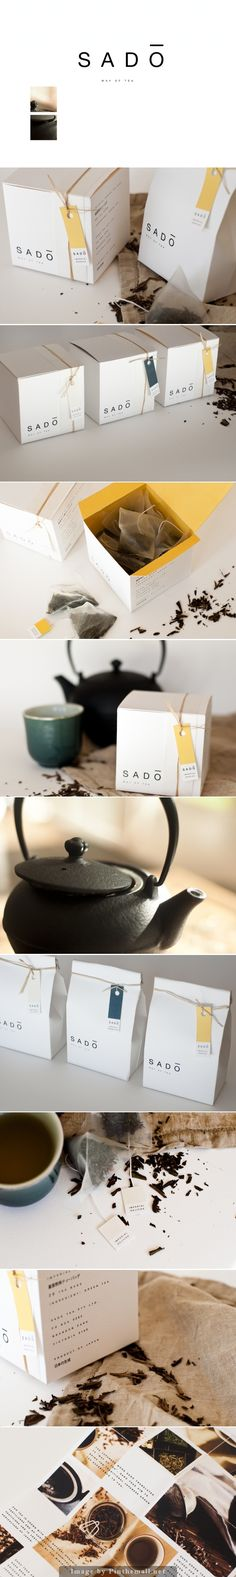 Got time time for some Sado Tea #packaging and design inspiration by Emma…